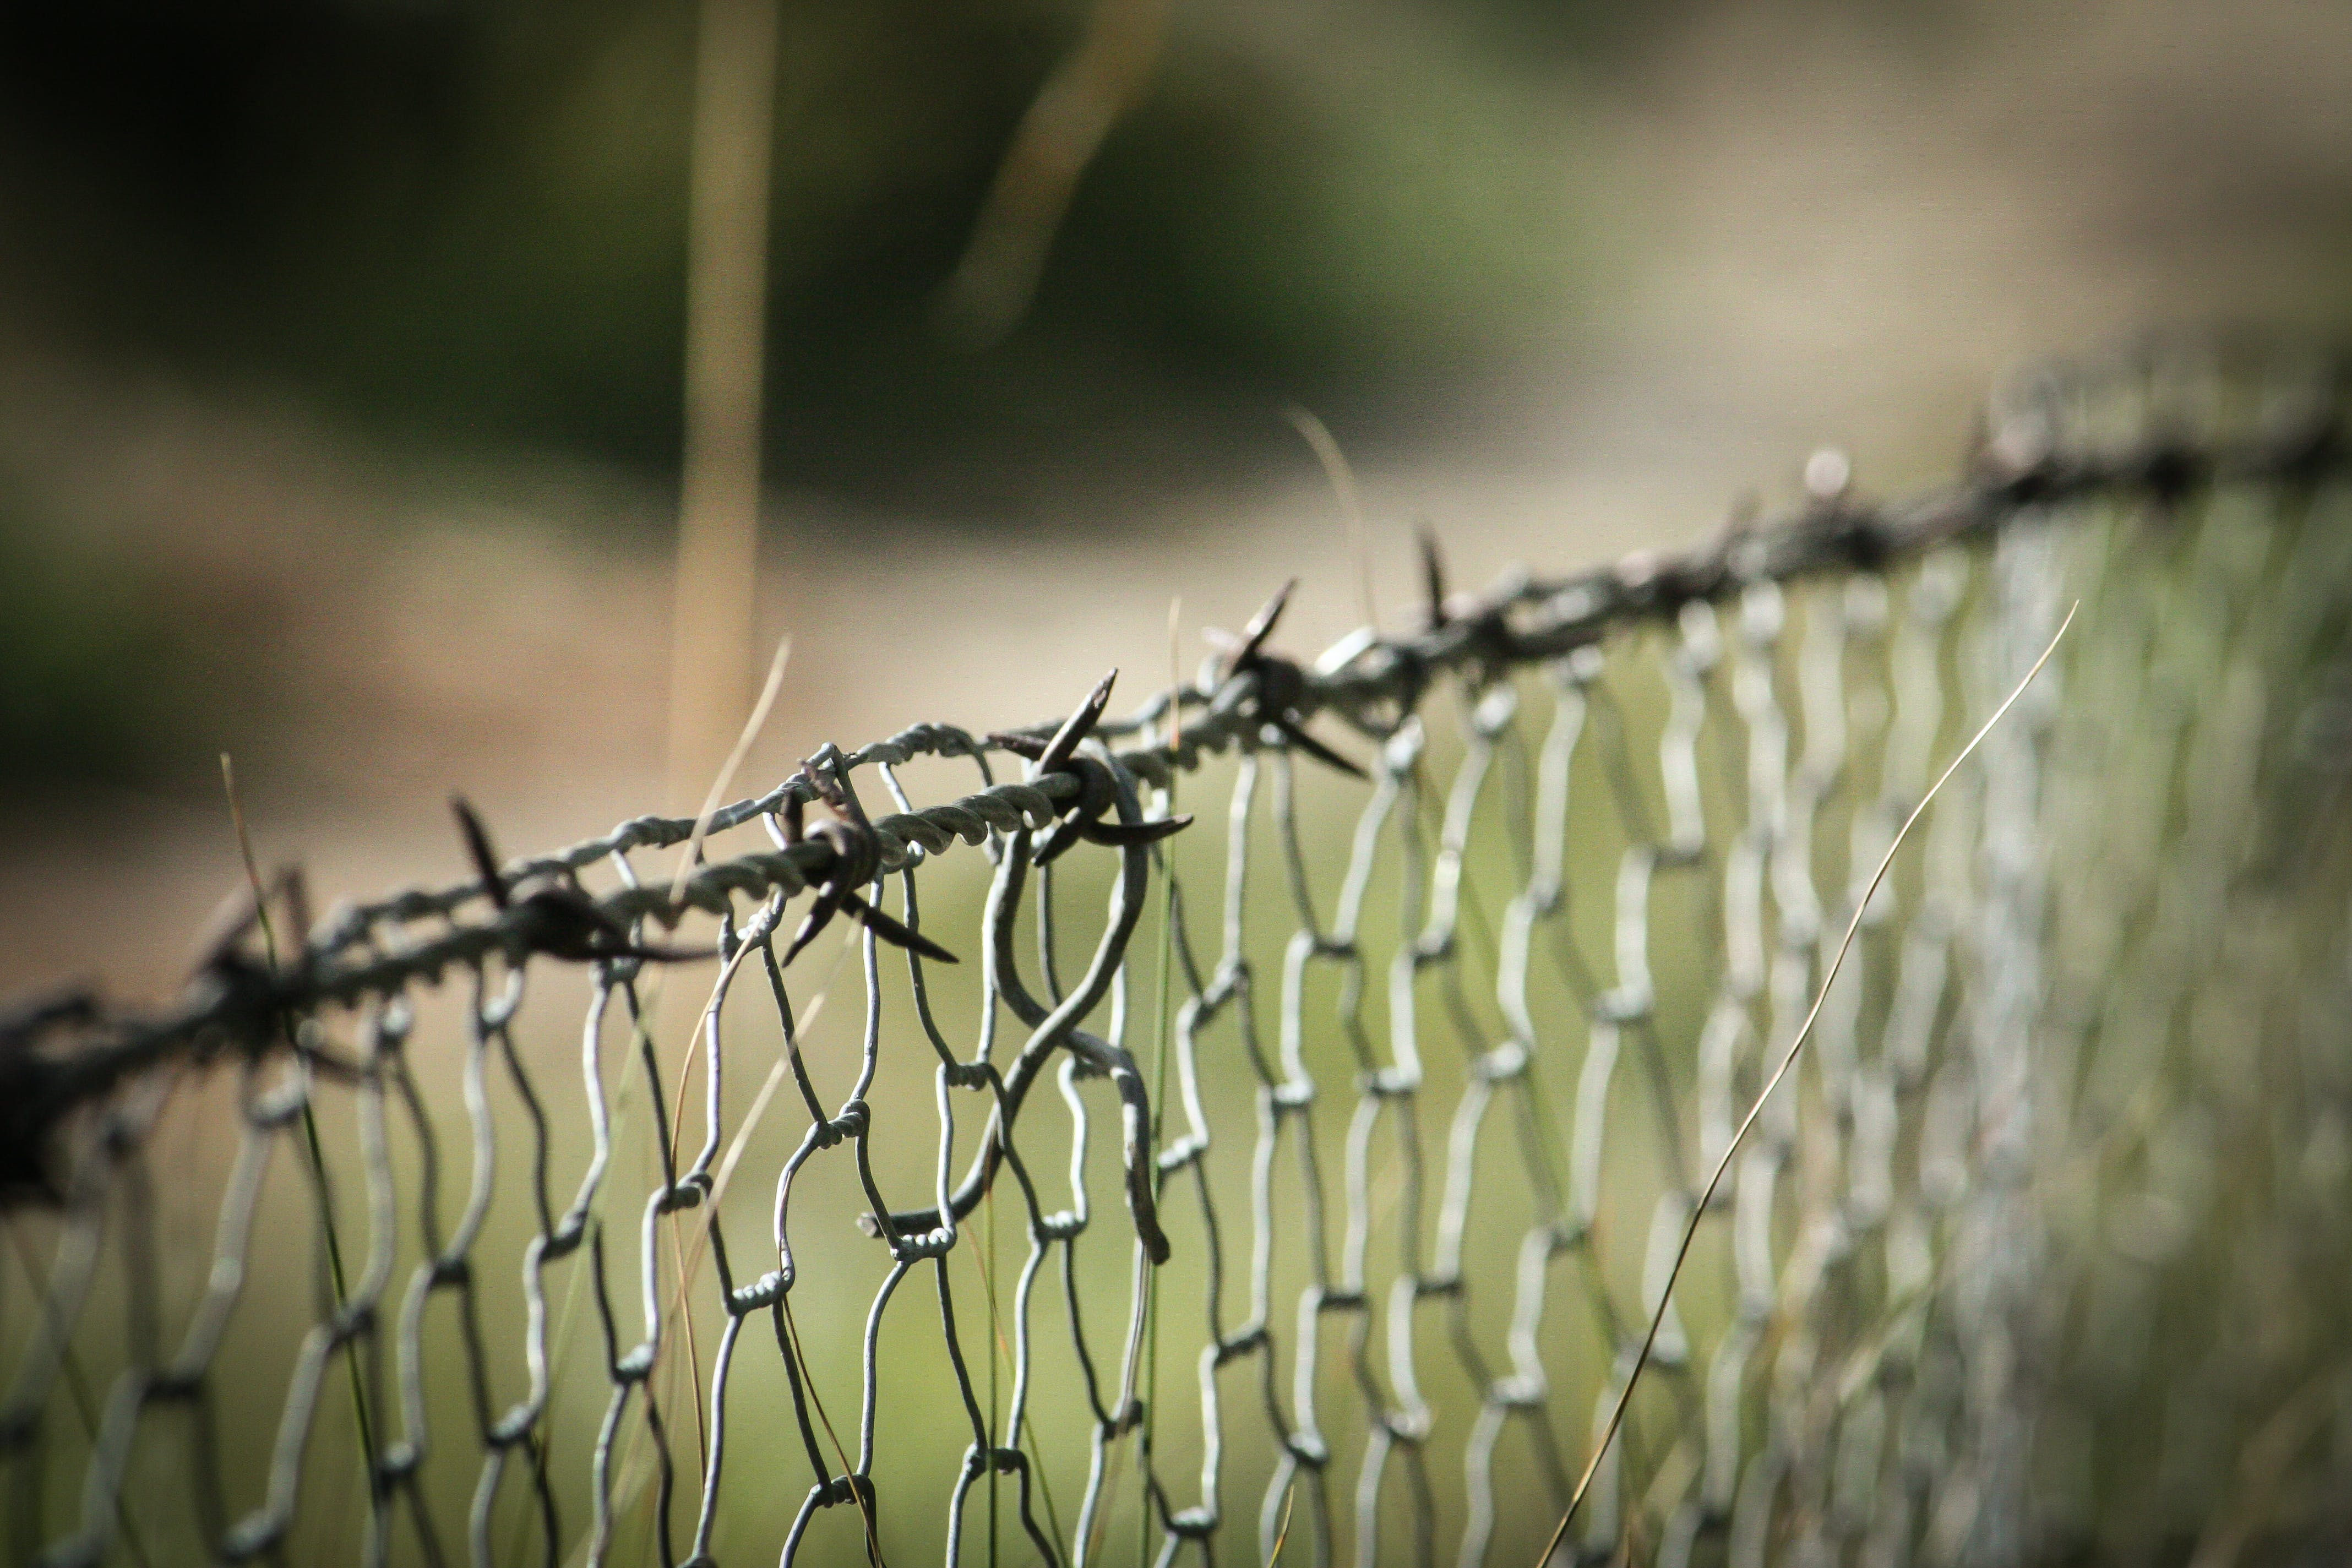 Barbwire on Top of Cyclone Fence